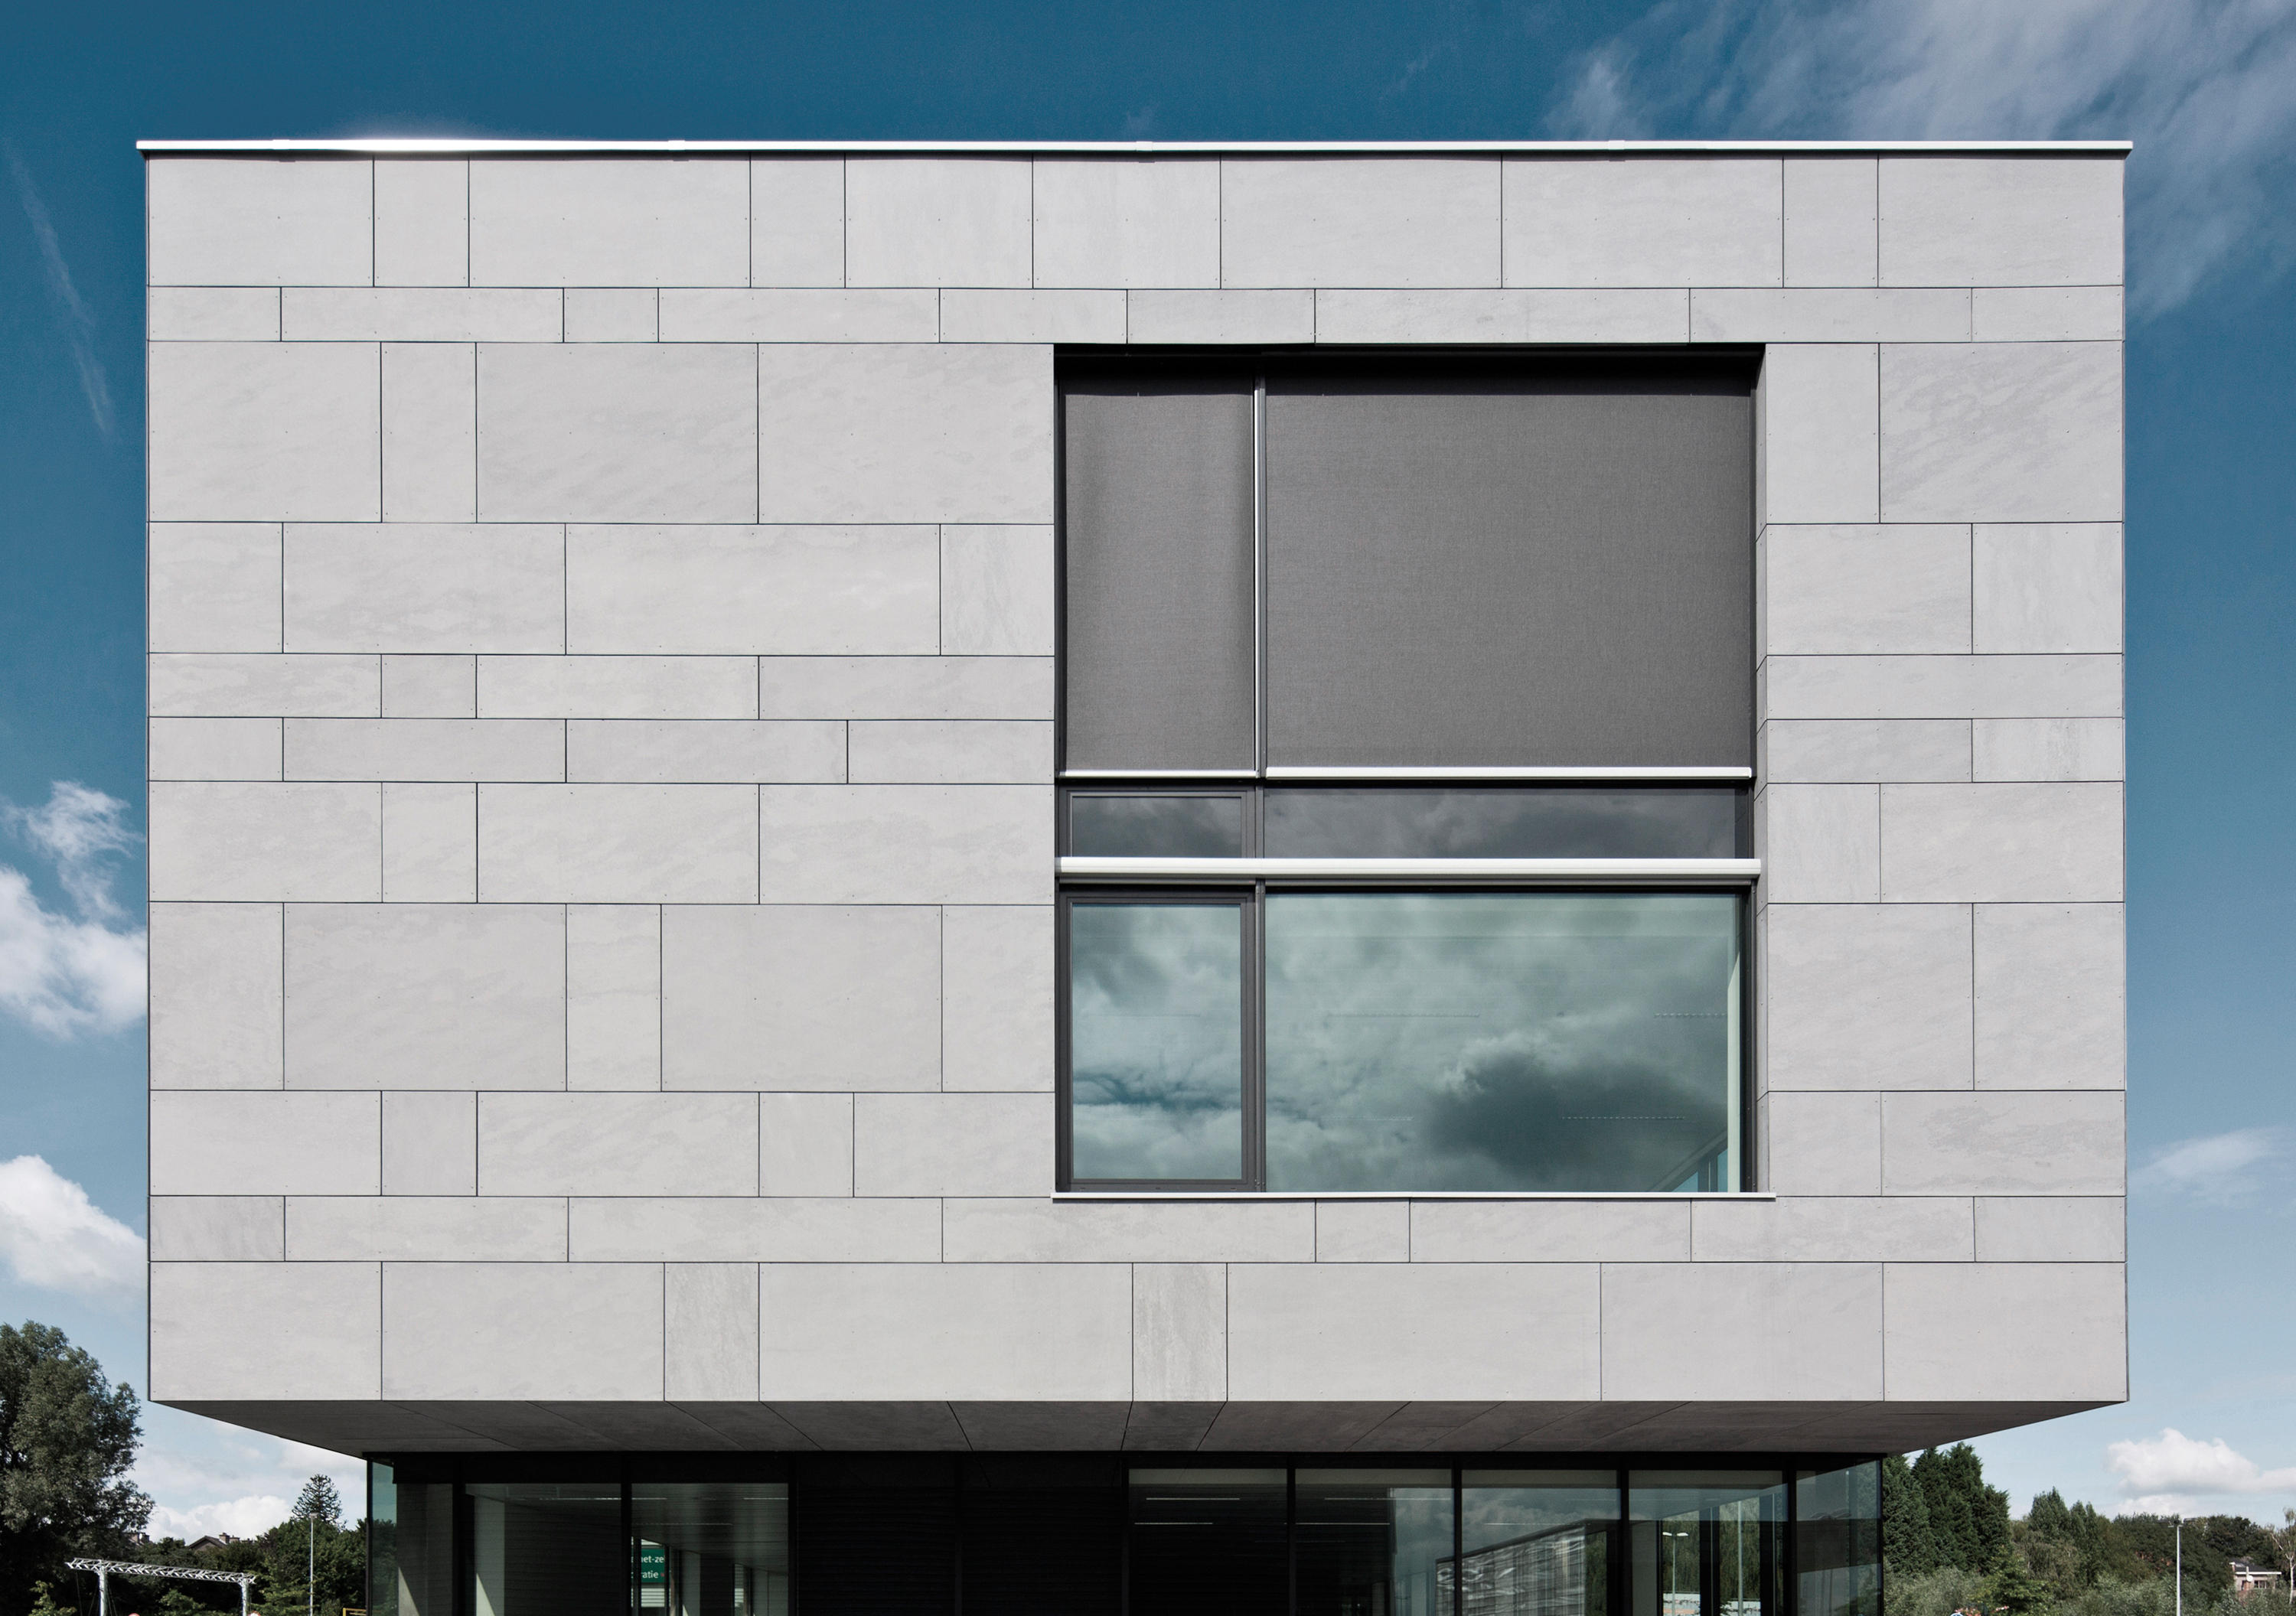 equitone tectiva facade design facade design from equitone architonic. Black Bedroom Furniture Sets. Home Design Ideas